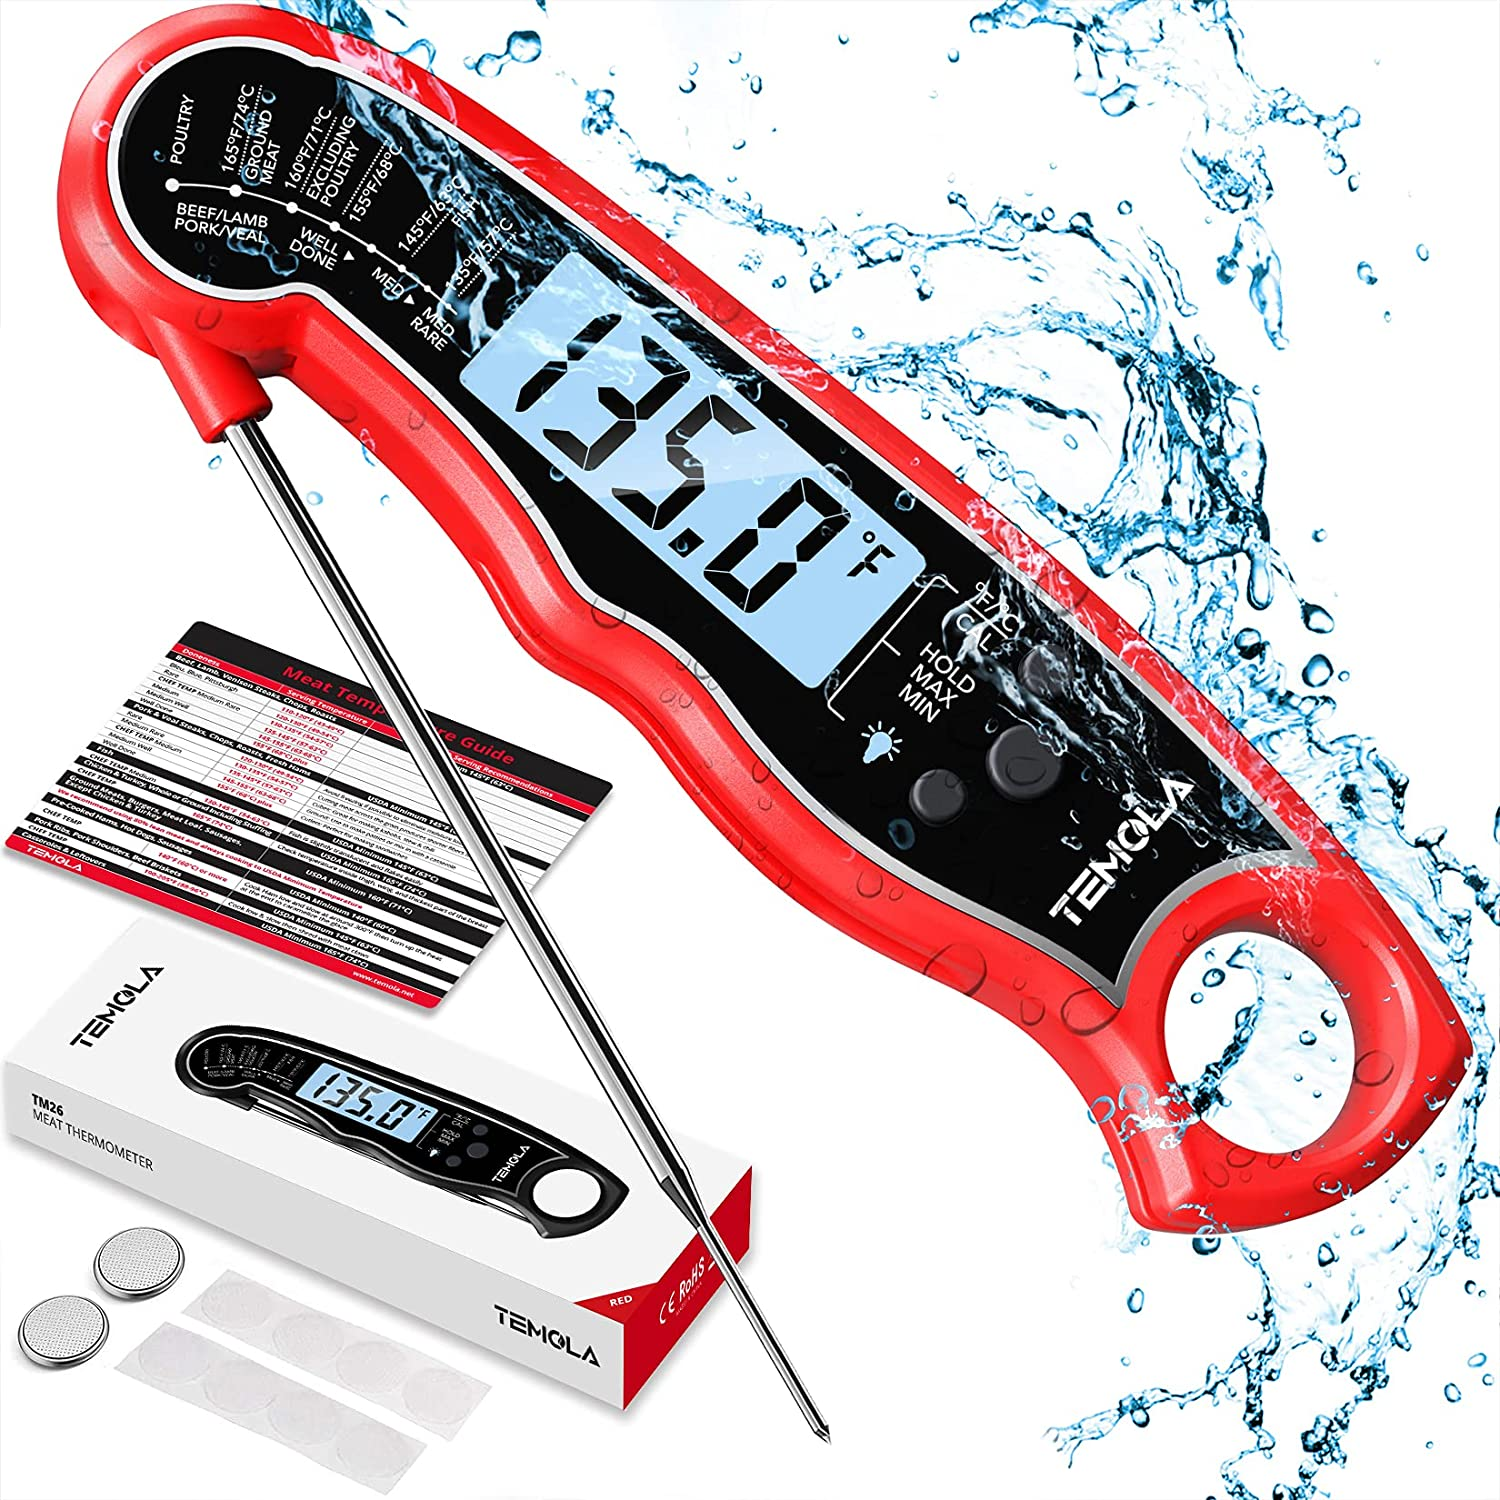 Meat Thermometer, Instant Read Food Thermometer with LCD Backlight Calibration, Waterproof Ultra Fast Digital Cooking Thermometer for Candy Deep Fry Liquids Turkey Kitchen Baking Smoker Grill BBQ